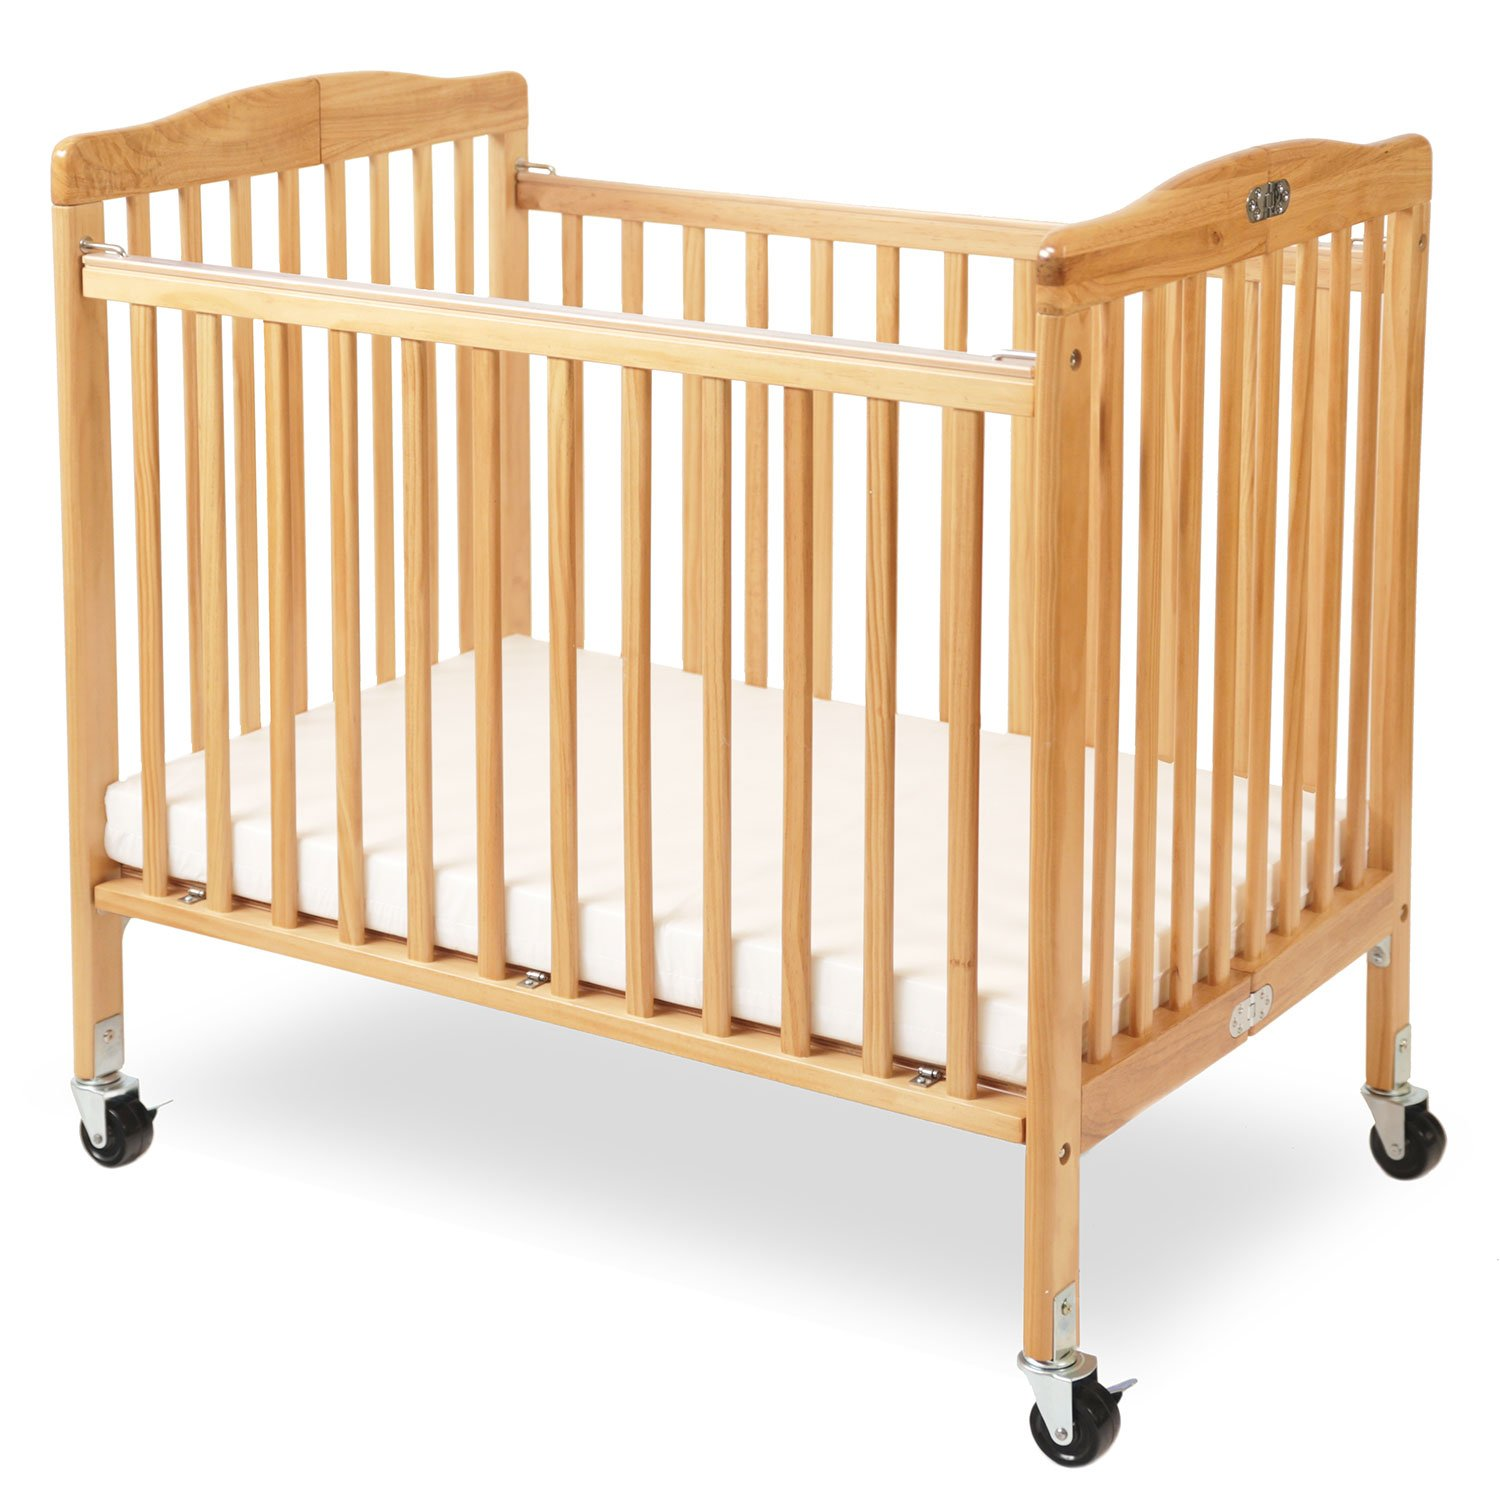 LA Baby The Little Wood Crib, Natural by LA Baby